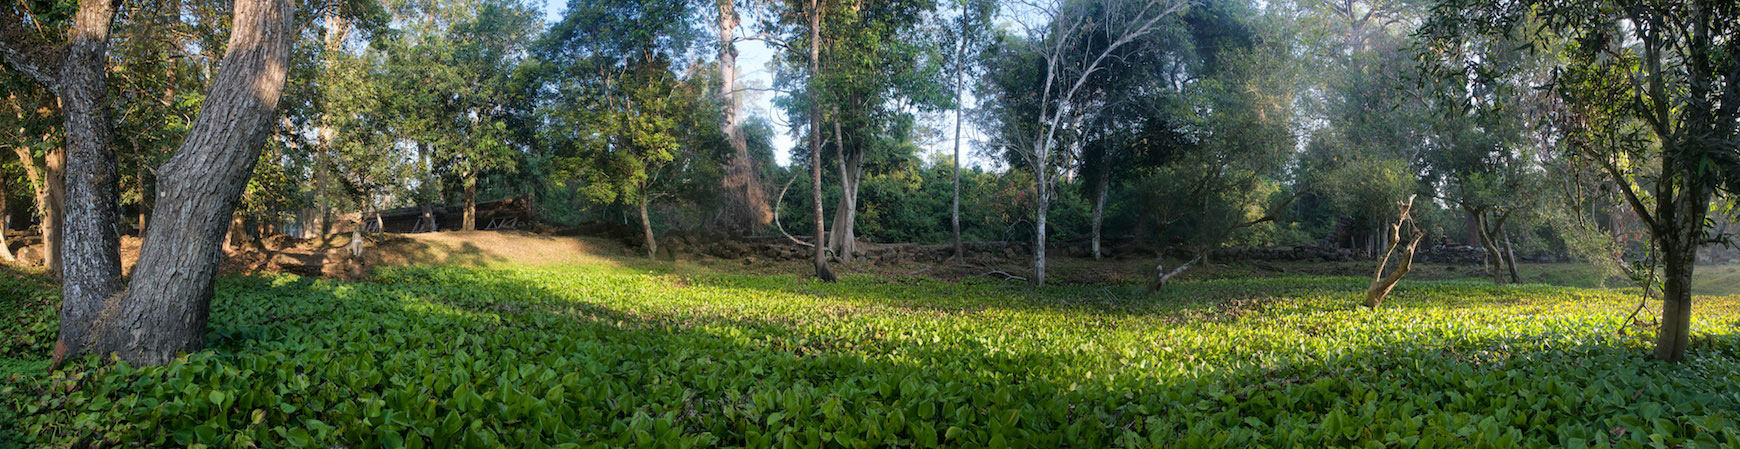 preah-khan-vegetation-pano.jpg